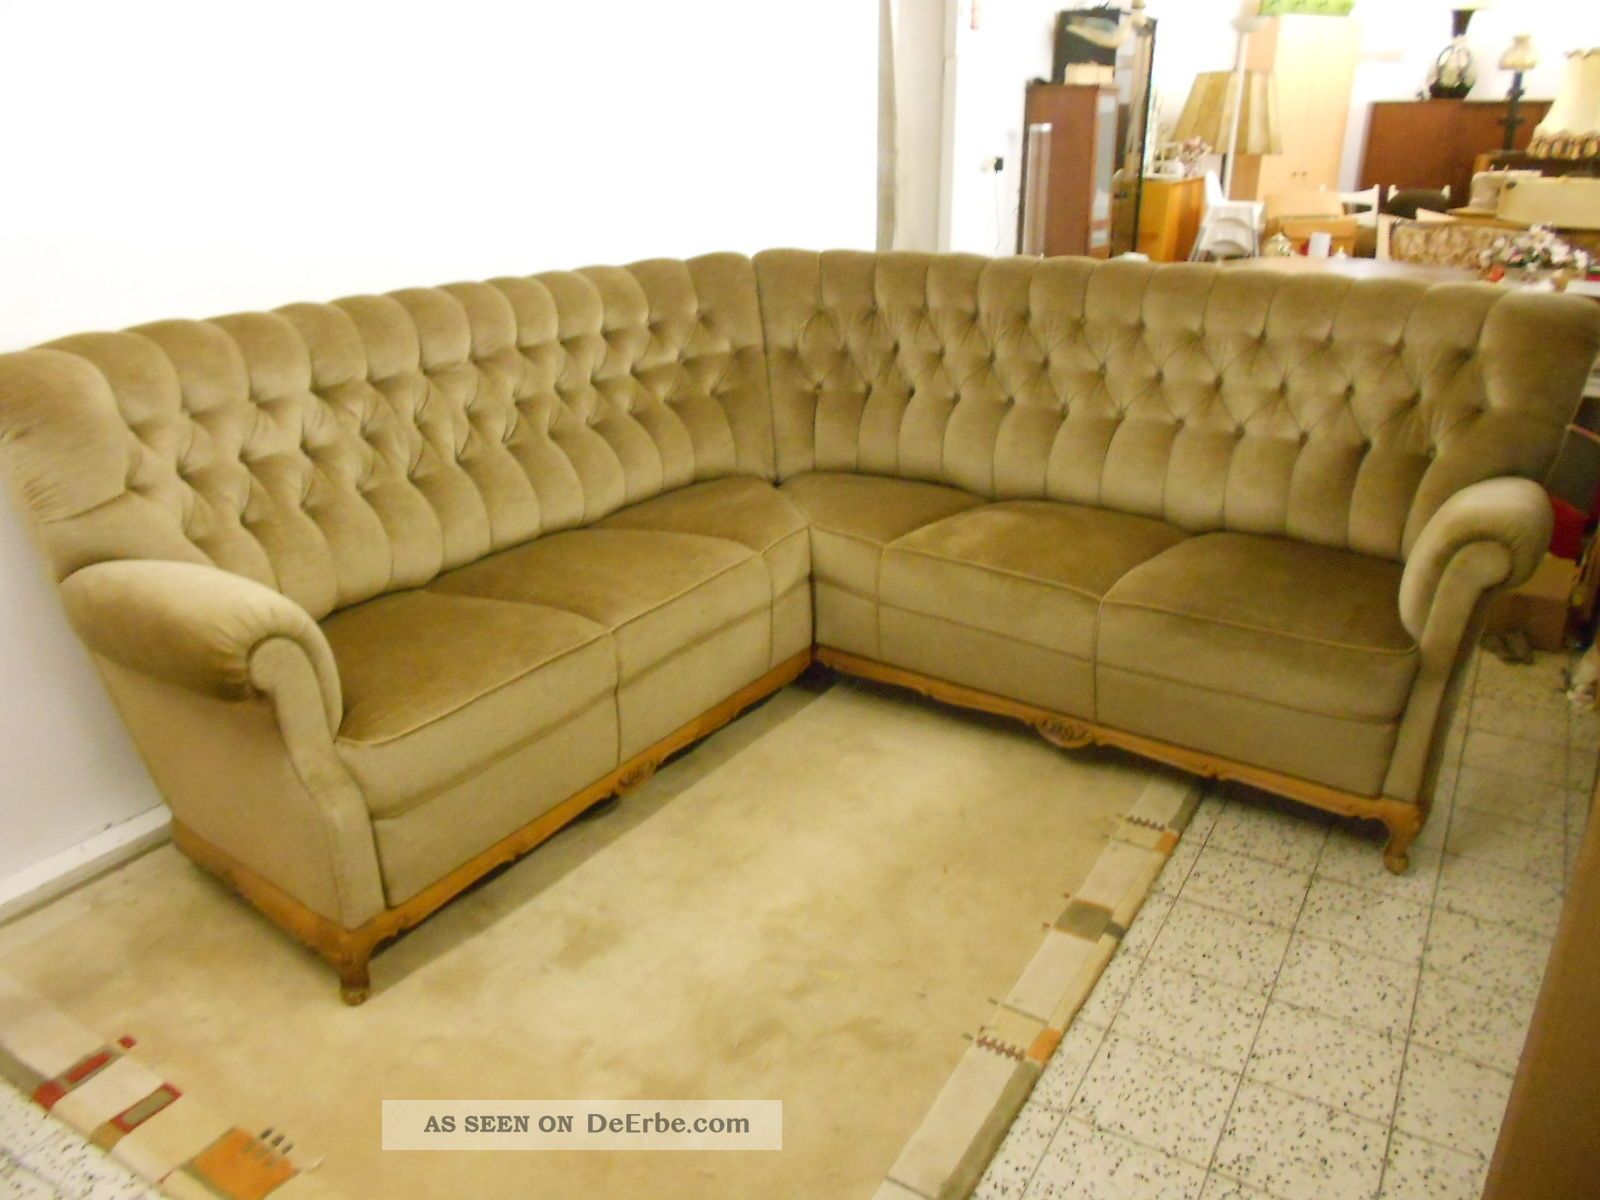 Chesterfield Sessel Weiss Sofa Couch Ecksofa Chippendale Stil Chesterfield Stil Grün